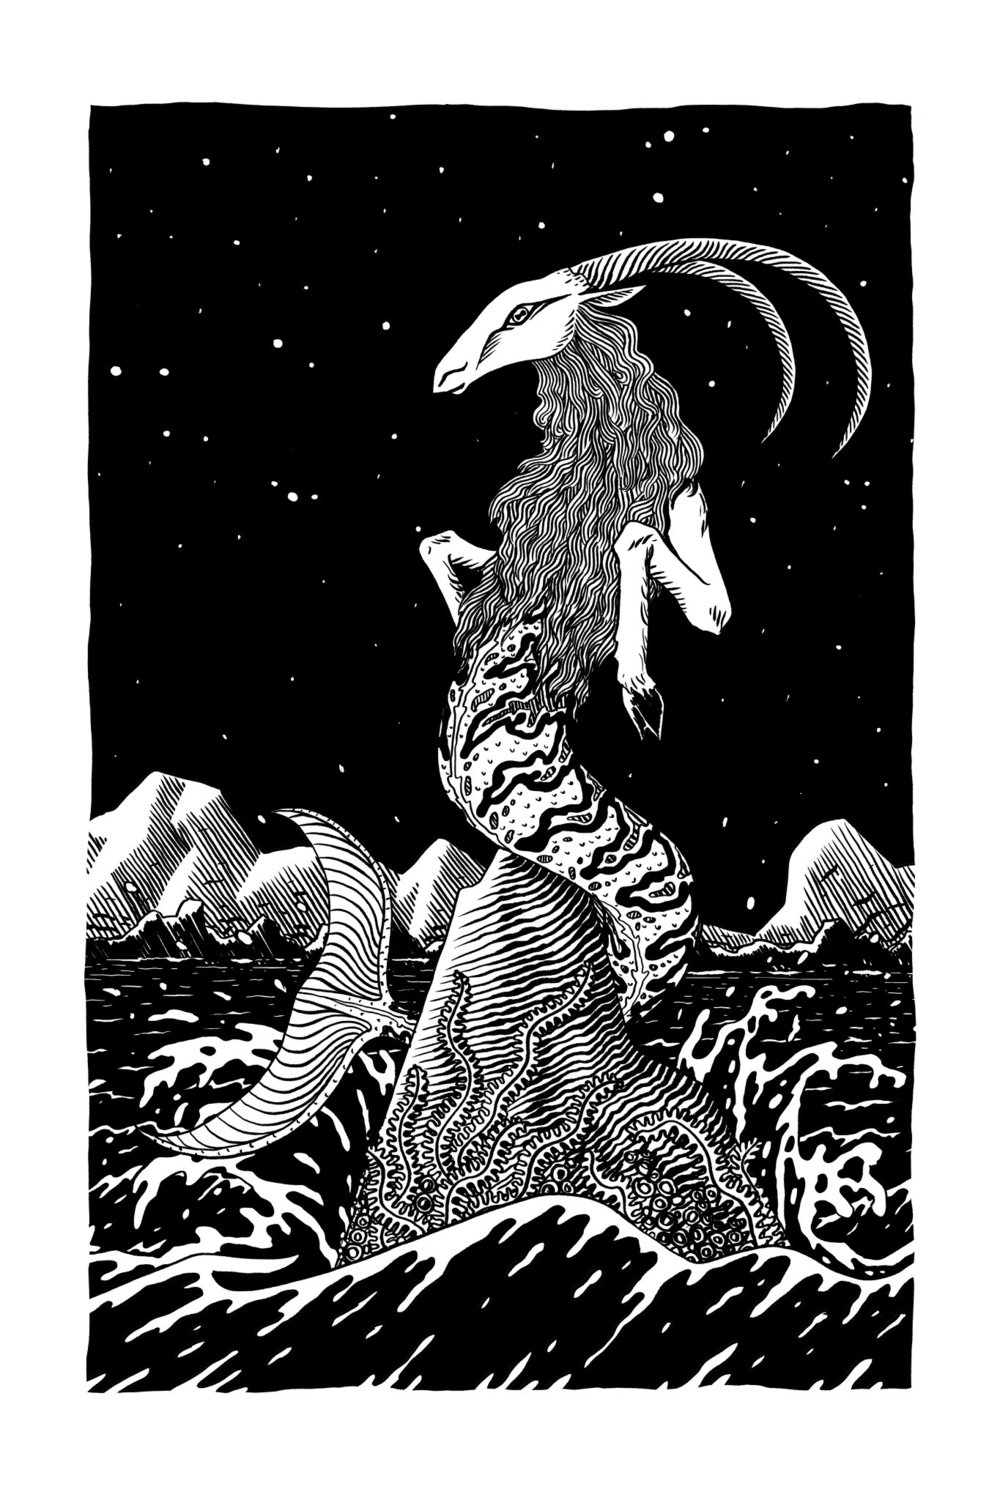 Capricorn by Alejandro Cardenas, from our book The Stars Within You. Prints available for purchase here:  etherealculture.com/shop